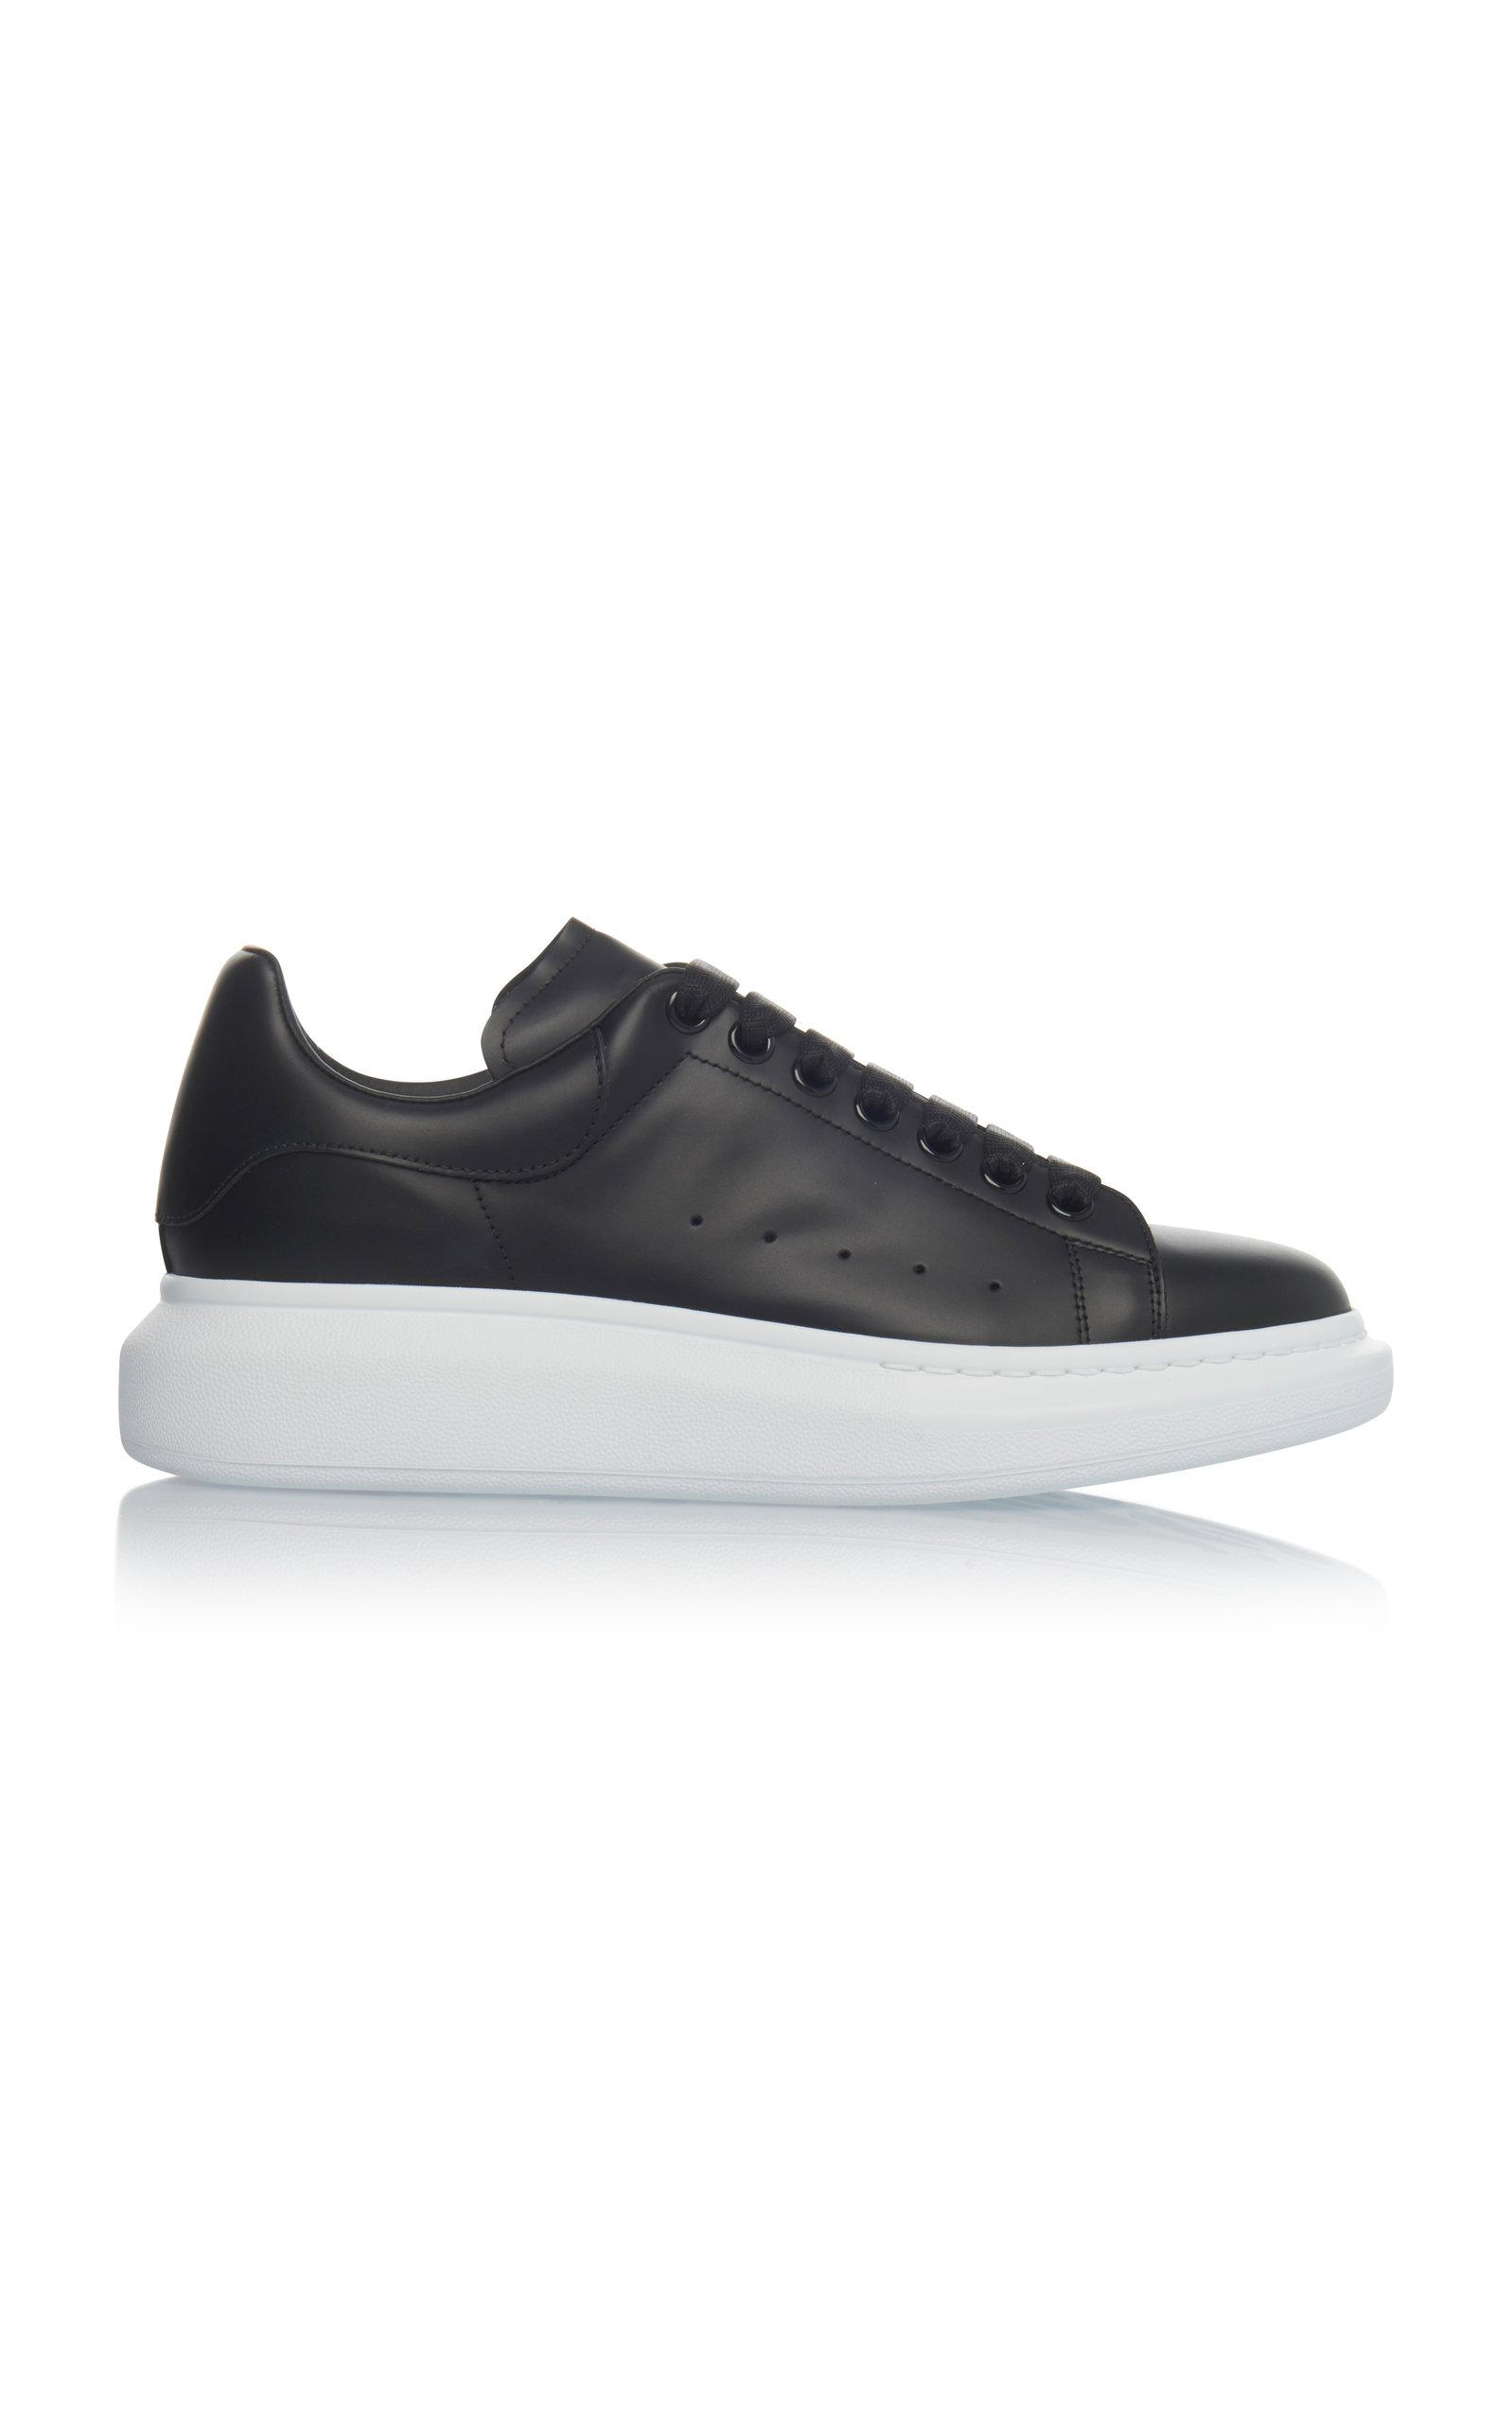 8c85ae35cbab Alexander Mcqueen Mens Black And White Show Leather Platform Trainers